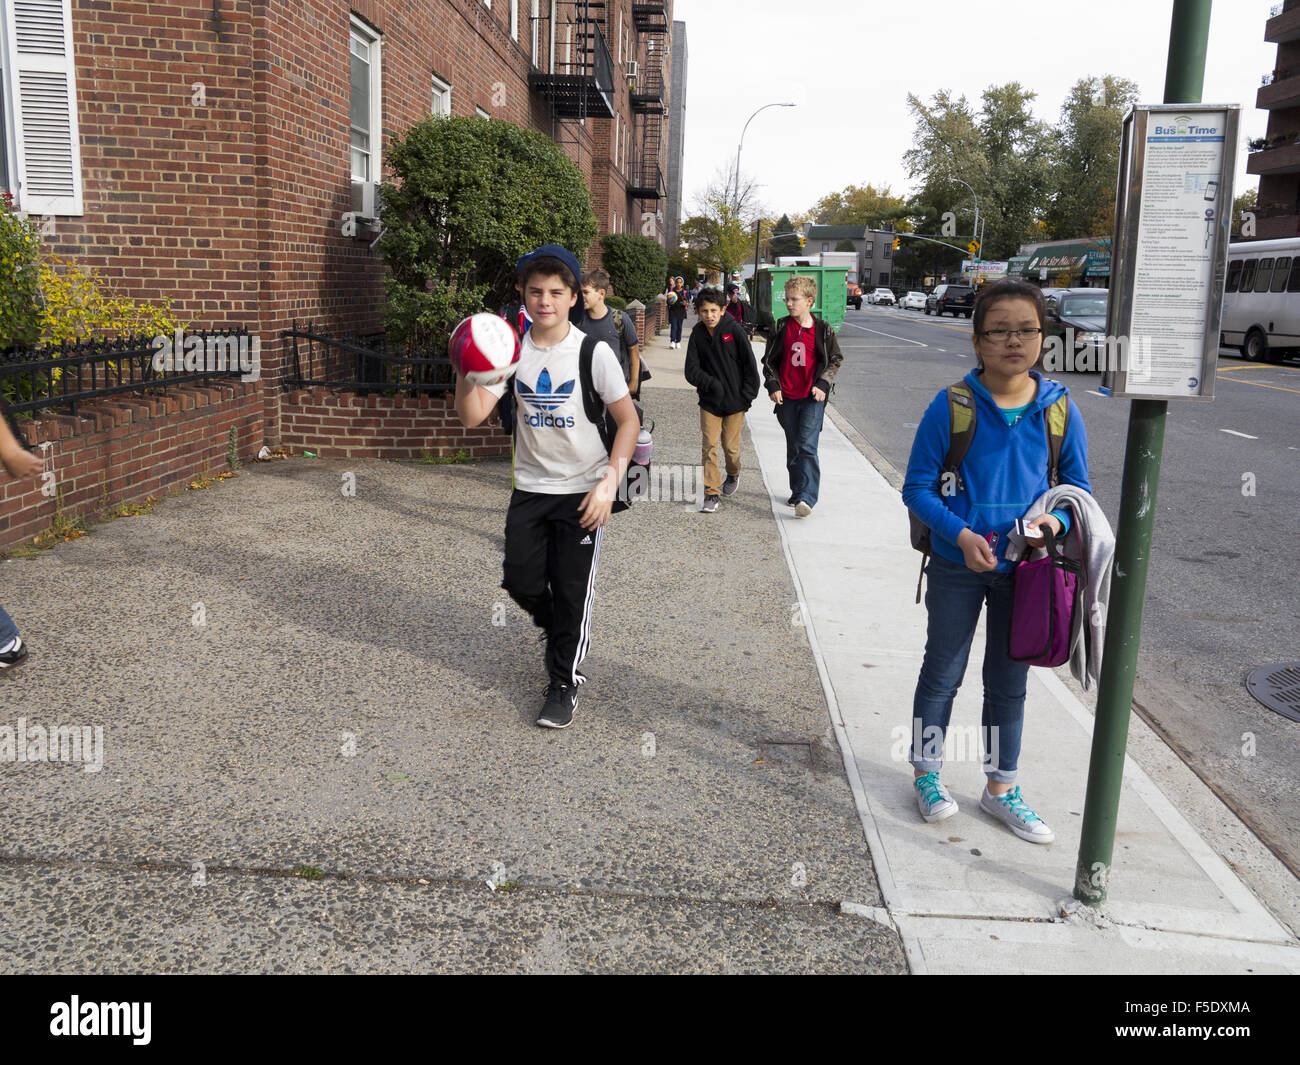 Children going home after school in Kensington, Brooklyn, NY, 2015. - Stock Image